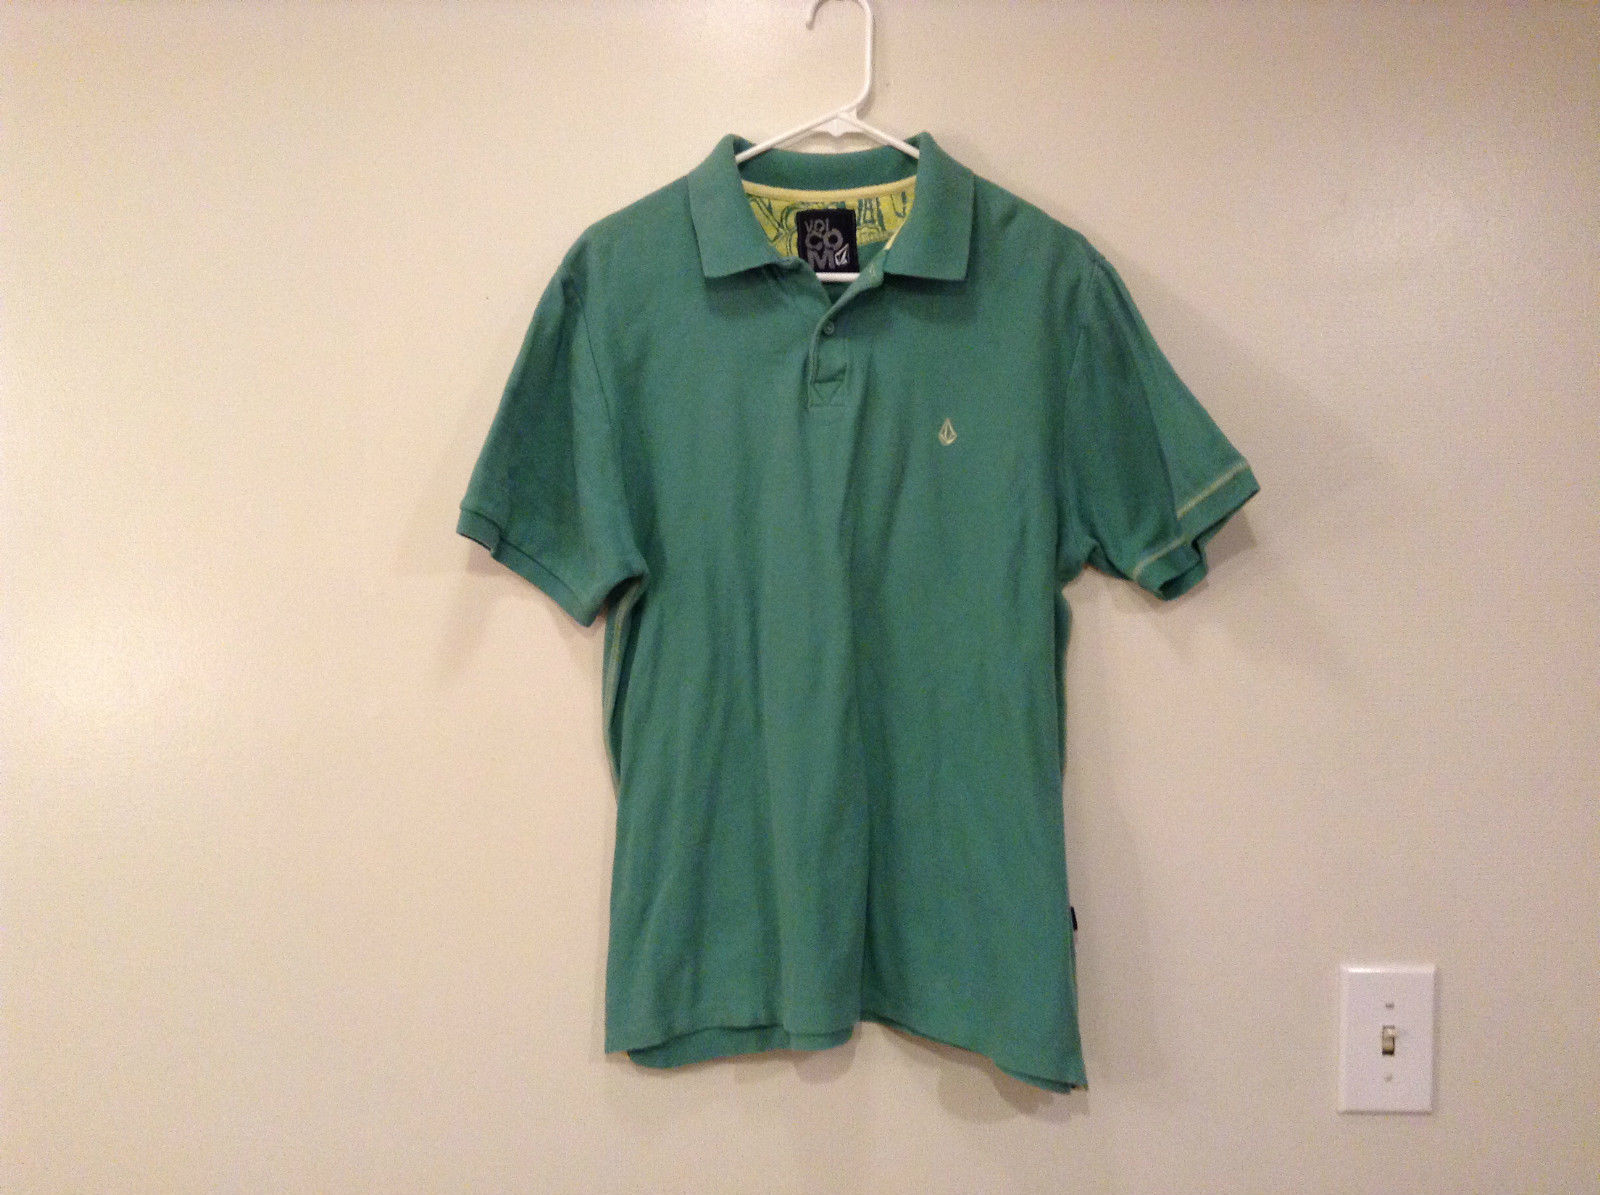 Volcom Green with Light Yellow Trim Short Sleeve Cotton Polo Shirt Size Large